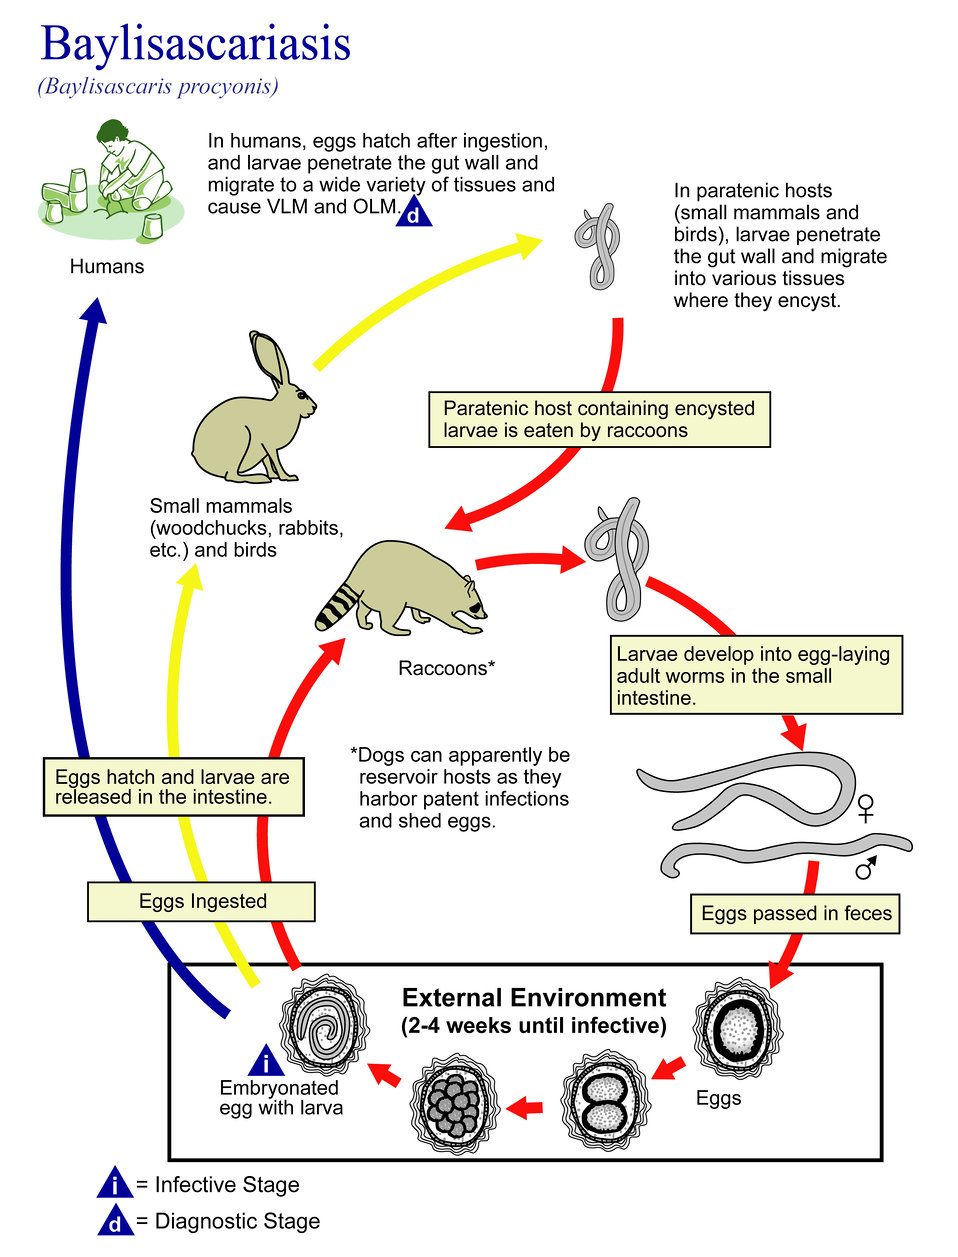 This illustration depicts the life cycle of Baylisascaris procyonis, the causal agent of Baylisascariasis.